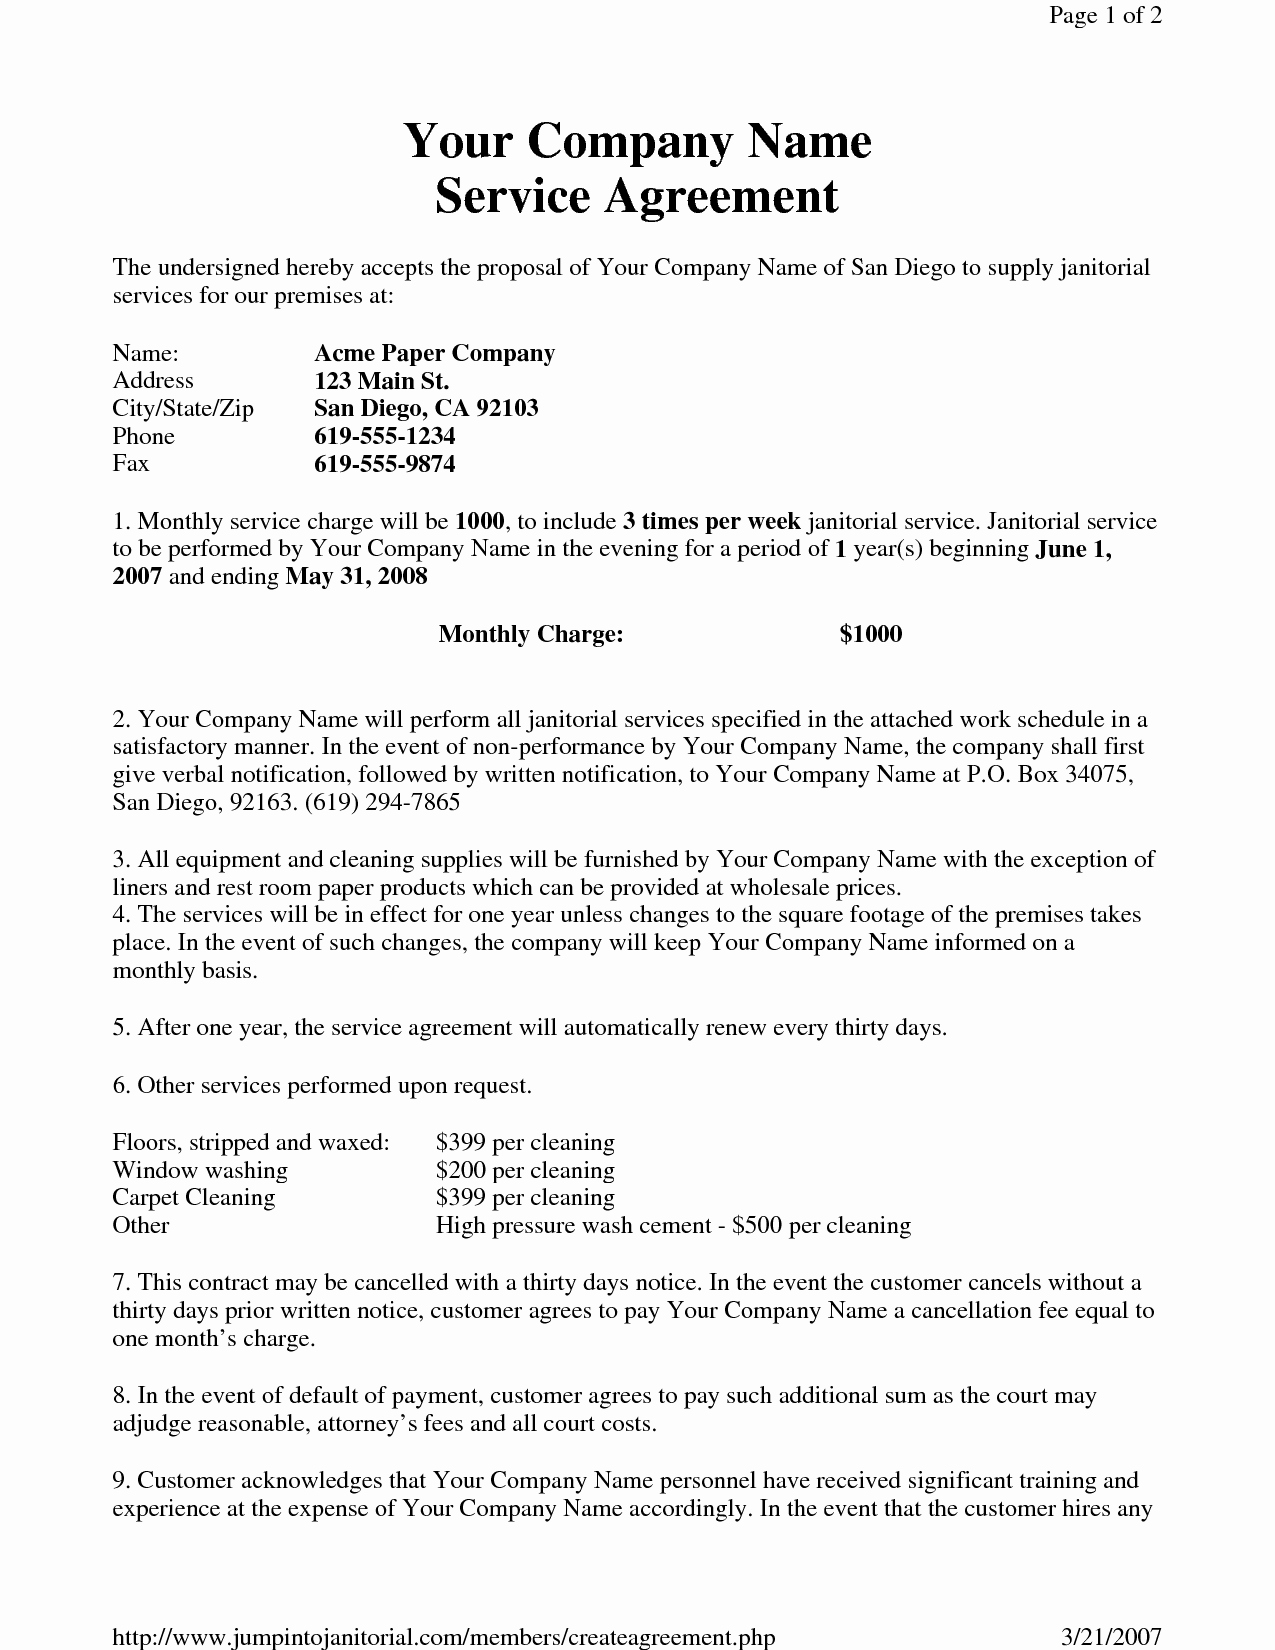 Janitorial Contract Template Beautiful Janitorial Service Agreement by Hgh Sample